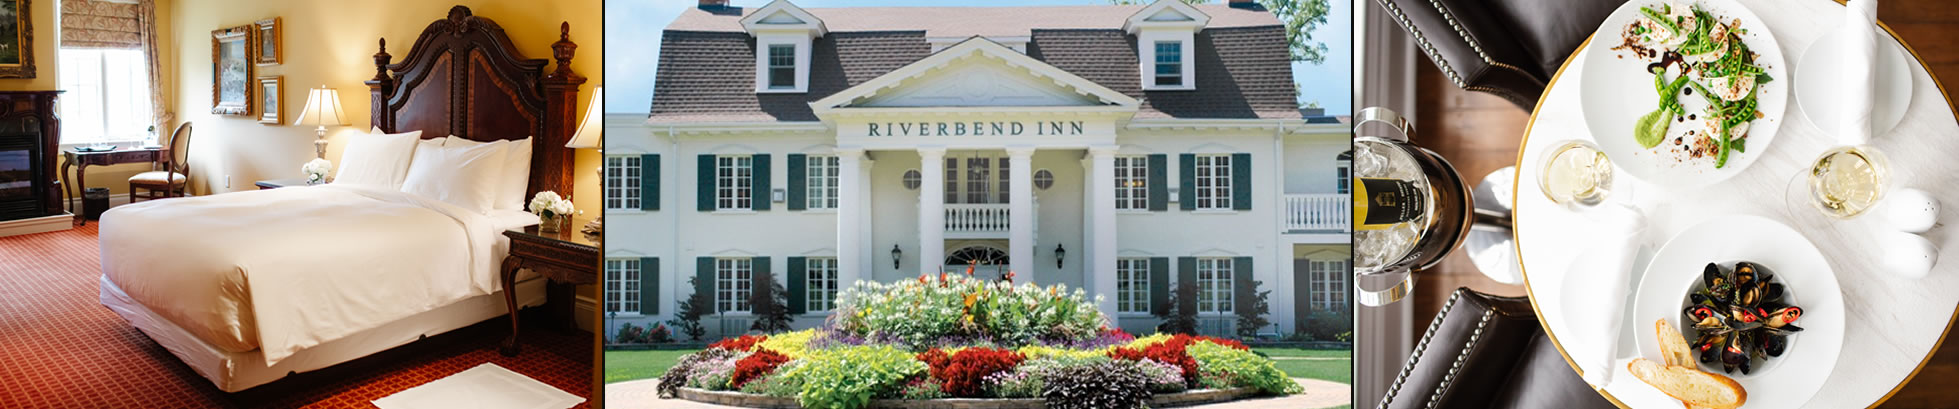 Front of Riverbend Inn